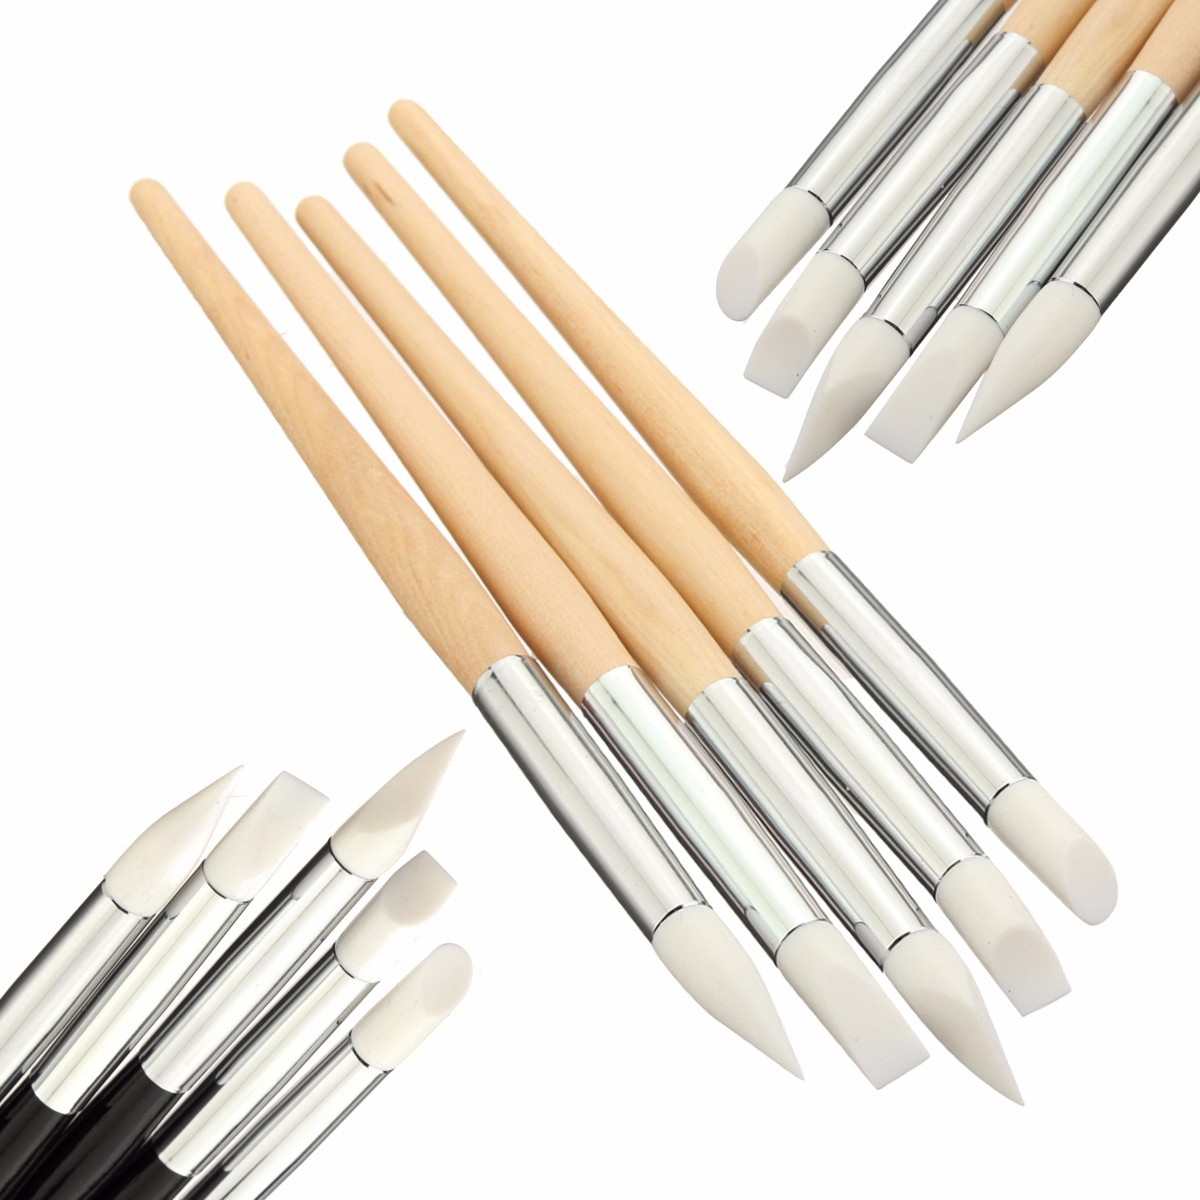 5Pcs Silicone Nail Art Tips Painting Brush Pens Drawing Gel Polish Manicure Tool Kit